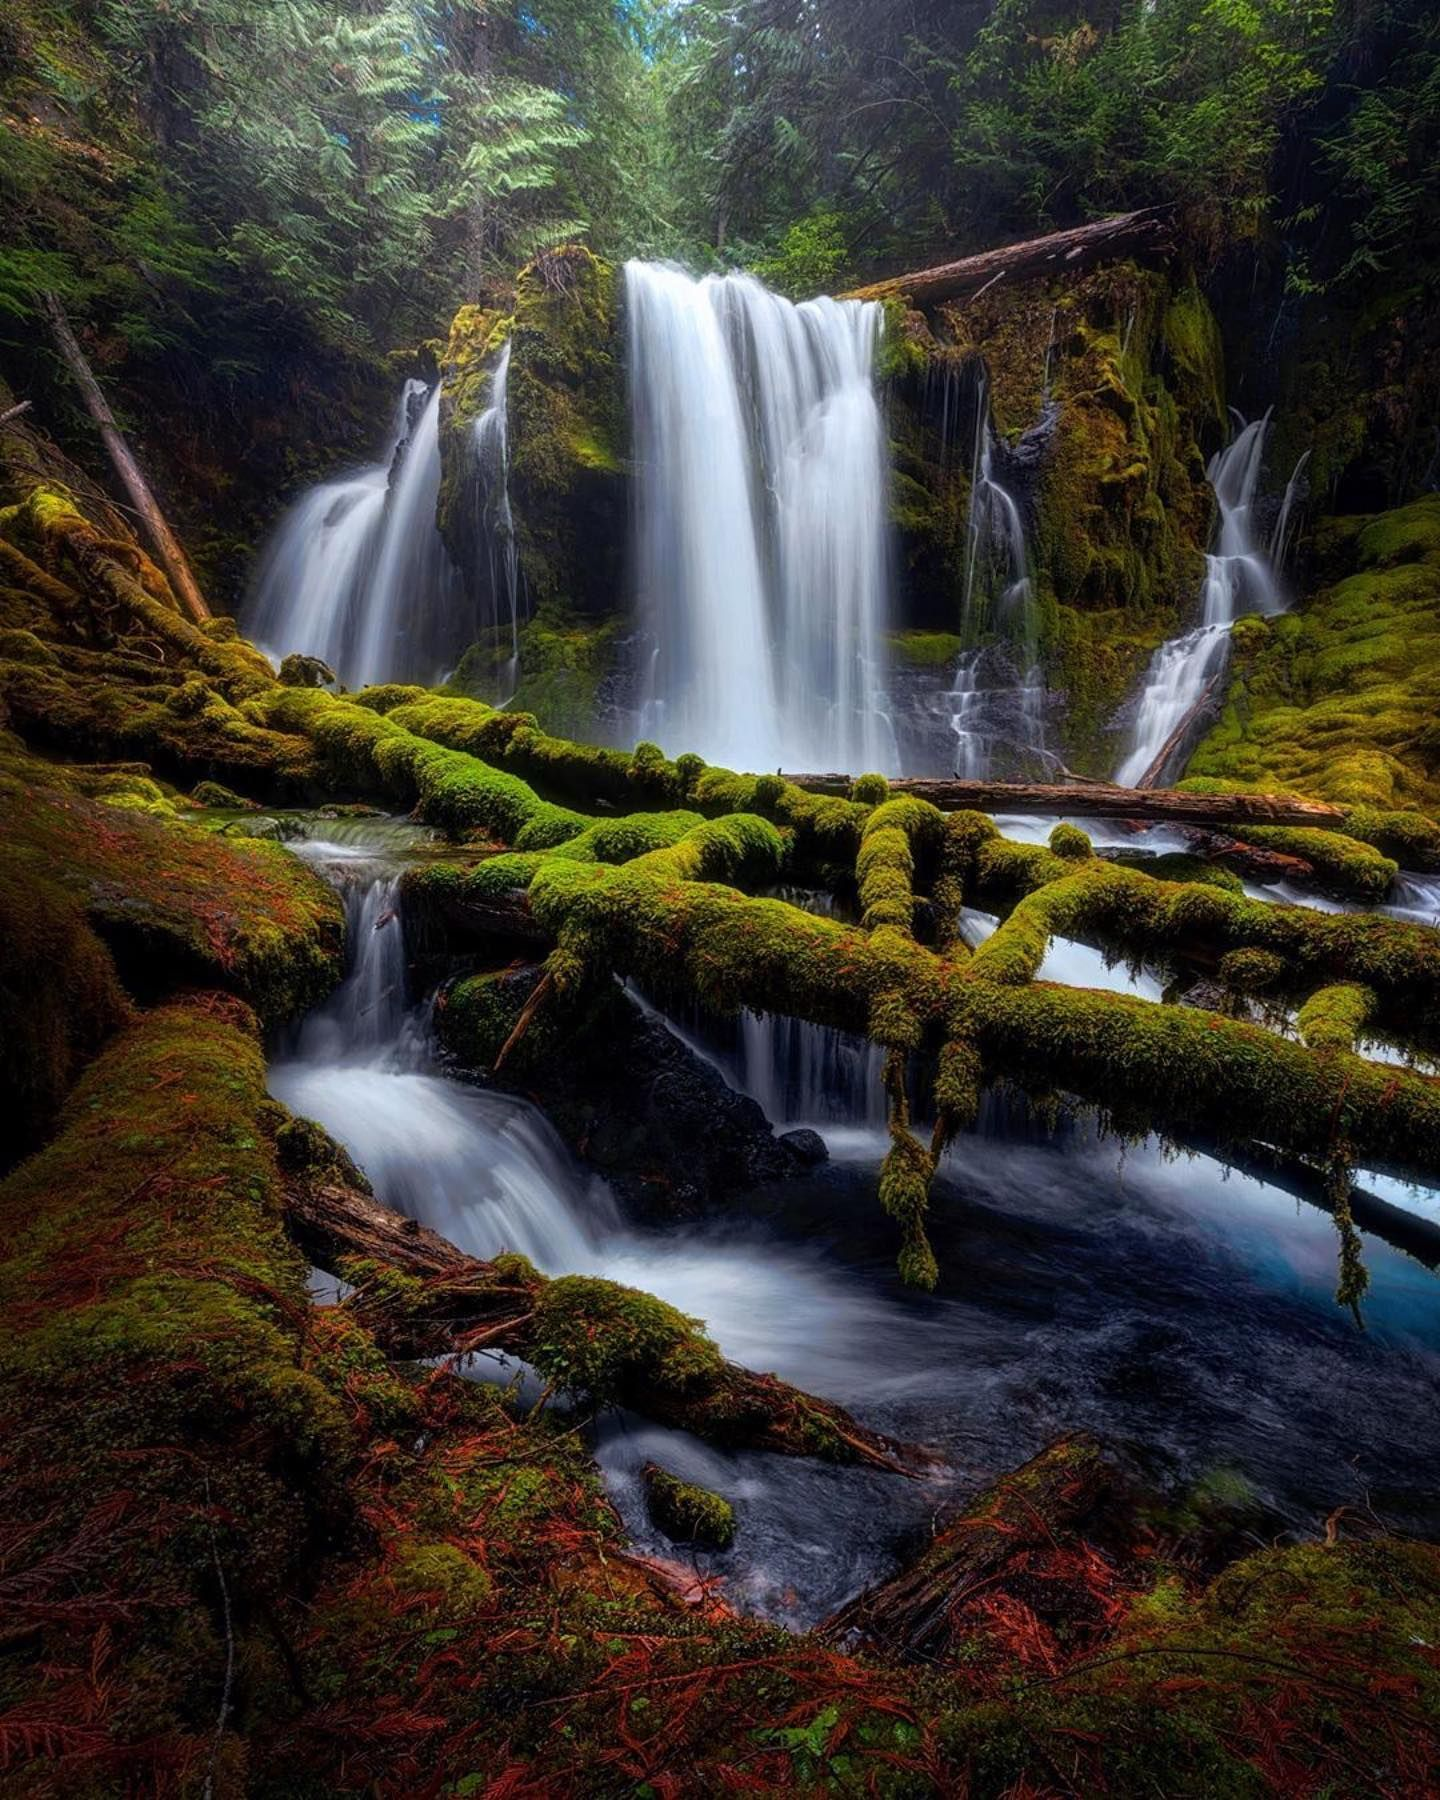 Repost  @jesse.brackenbury  A little waterfall Wednesday action for you on this beautiful day!  Whos excited for some good weather to start flooding the area instead of rain flooding it?! Hope everyone is having a great week  . . .  #cascadiaexplored @pnwonderland @pnw.paradise #thenwadventure #nwisbest #sunrise #pnwonderland #pnwparadise #pnwusa #pnwphotographer #indurotripods @kgwnews @mthoodterritory @thegreat_pnw @pnw_moods #pnwadventure @theoregonian #oregonisbeautiful @pnw.shooters #destin